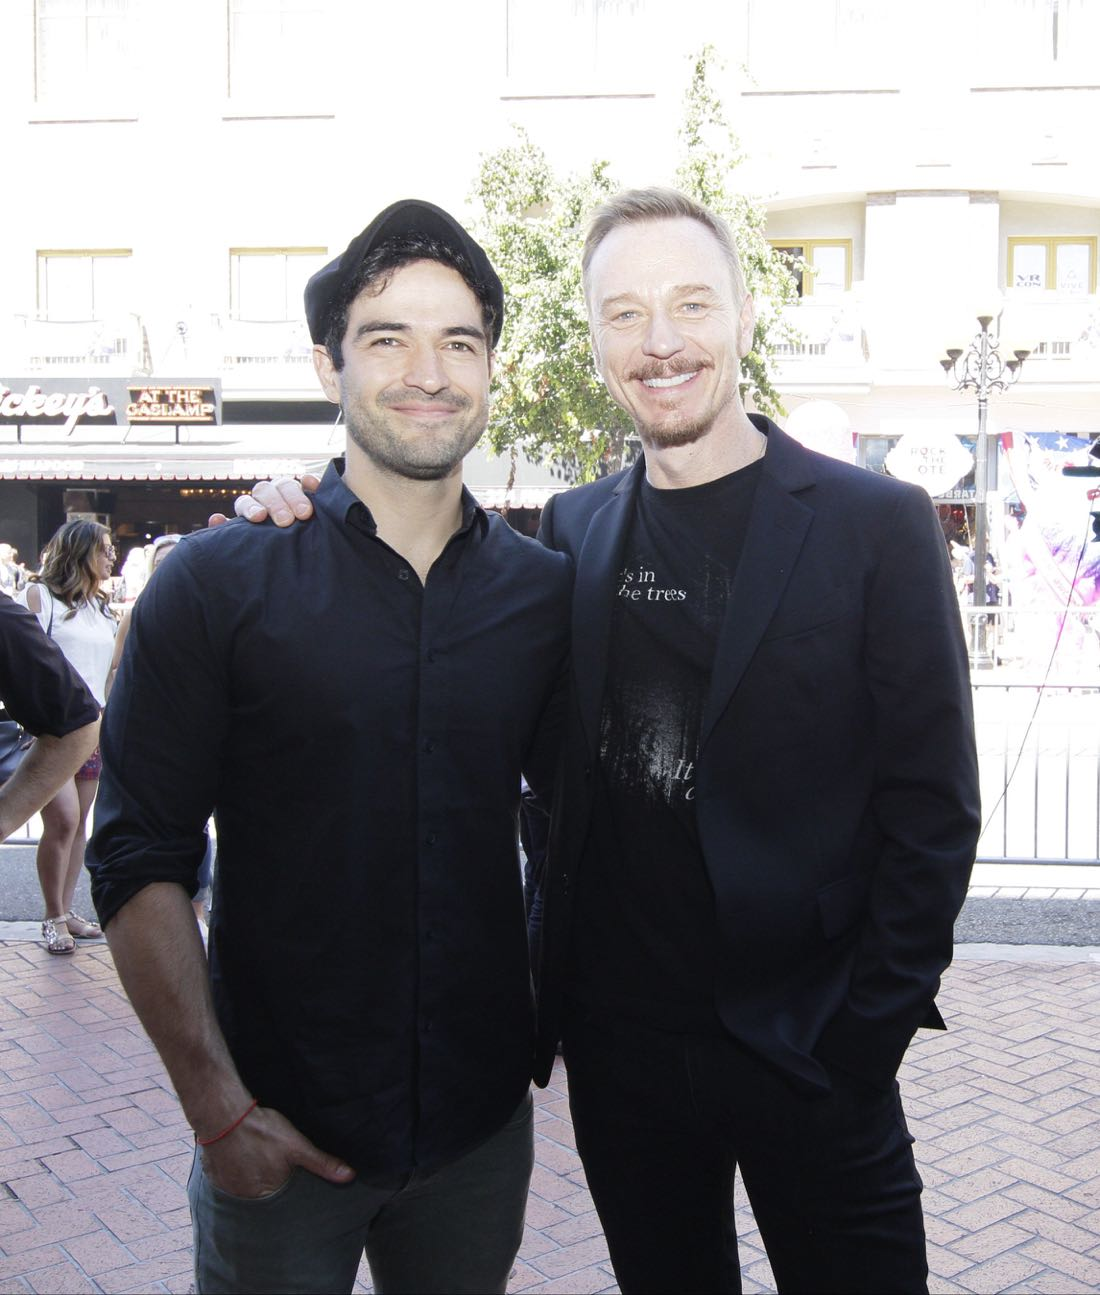 FOX FANFARE AT SAN DIEGO COMIC-CON © 2016: (L-R) THE EXORCIST cast members Alfonso Herrera and and Ben Daniels and fans during surprise exorcism performed on Friday, July 22 at the FOX FANFARE AT SAN DIEGO COMIC-CON © 2016. CR: Frank Micelotta/FOX © 2016 FOX BROADCASTING